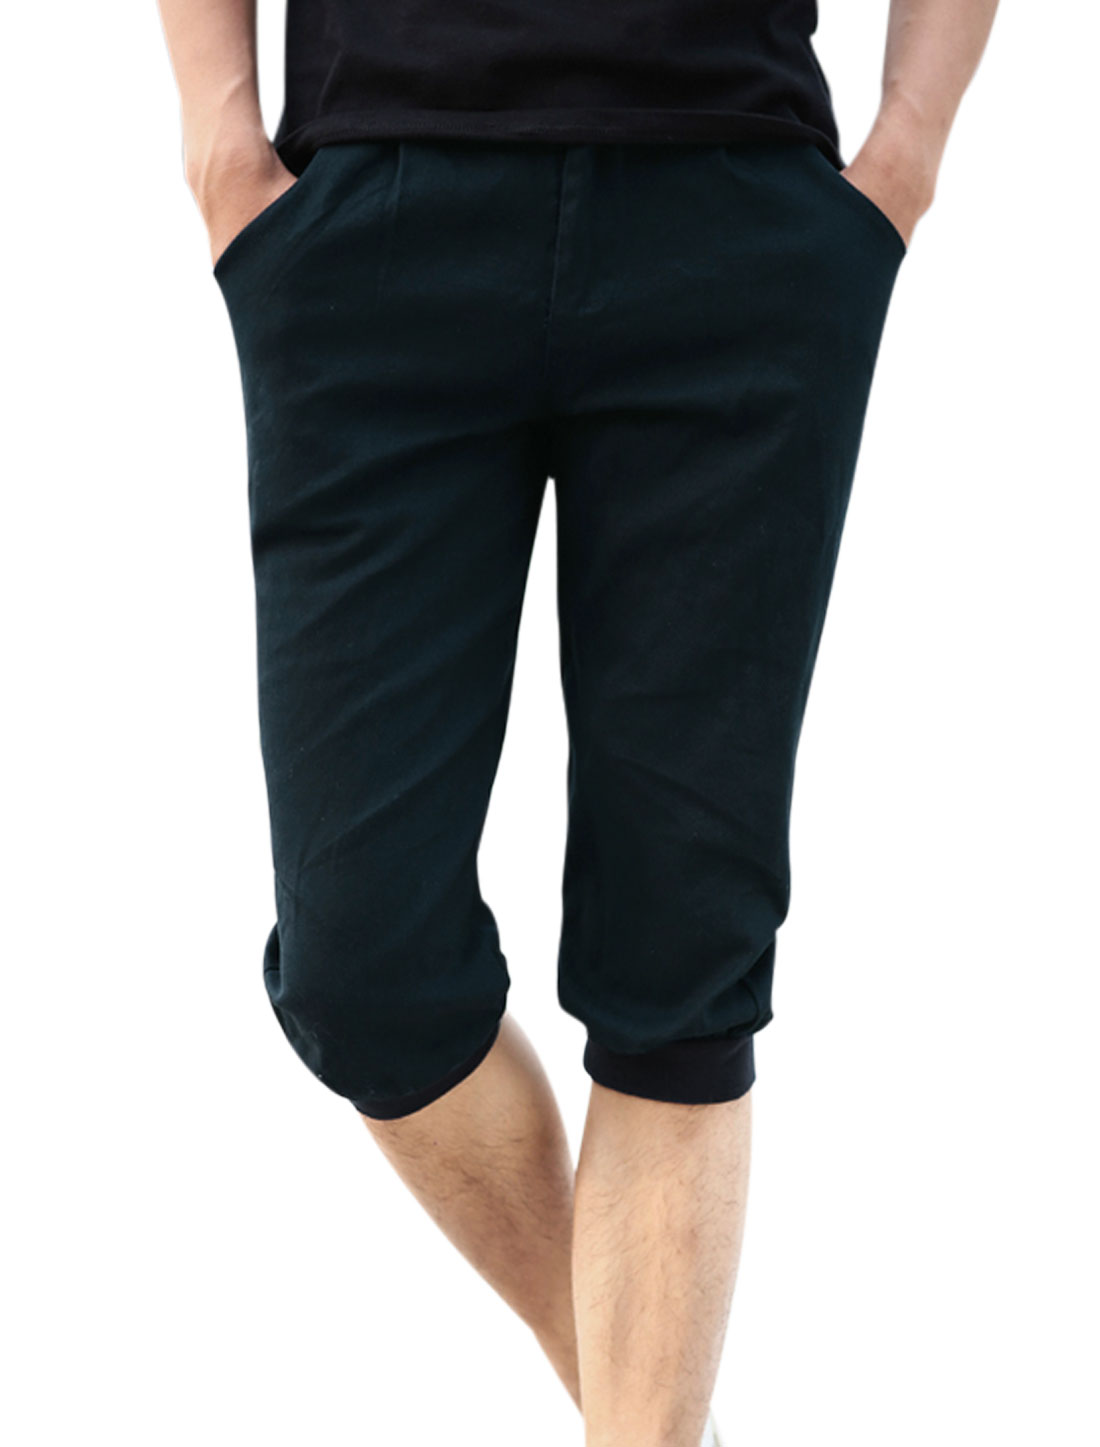 Belt Loop Zip Fly Double Pockets Back Capris Pants for Men Navy Blue W32